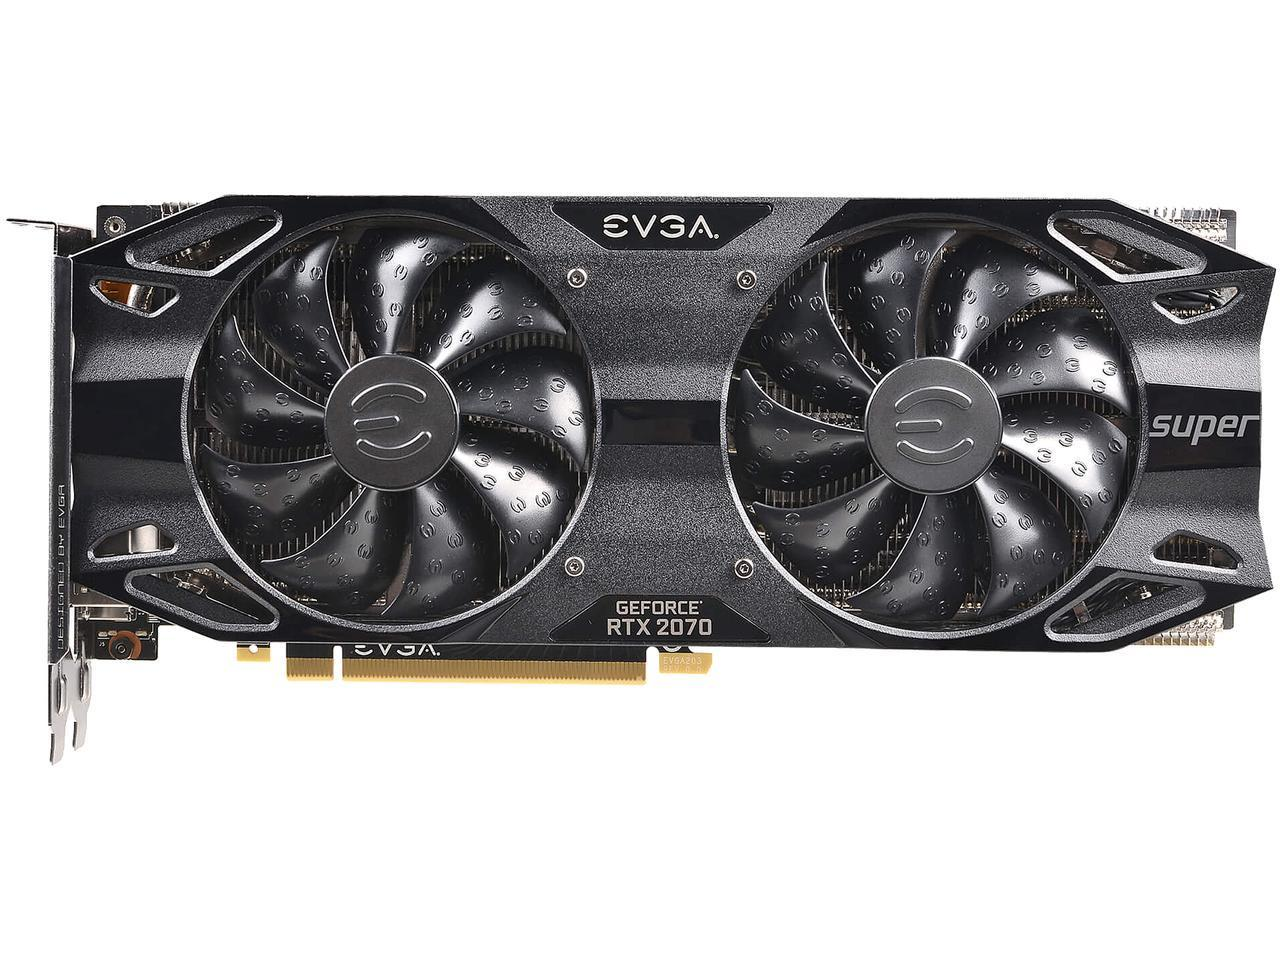 EVGA GeForce RTX 2070 SUPER BLACK GAMING